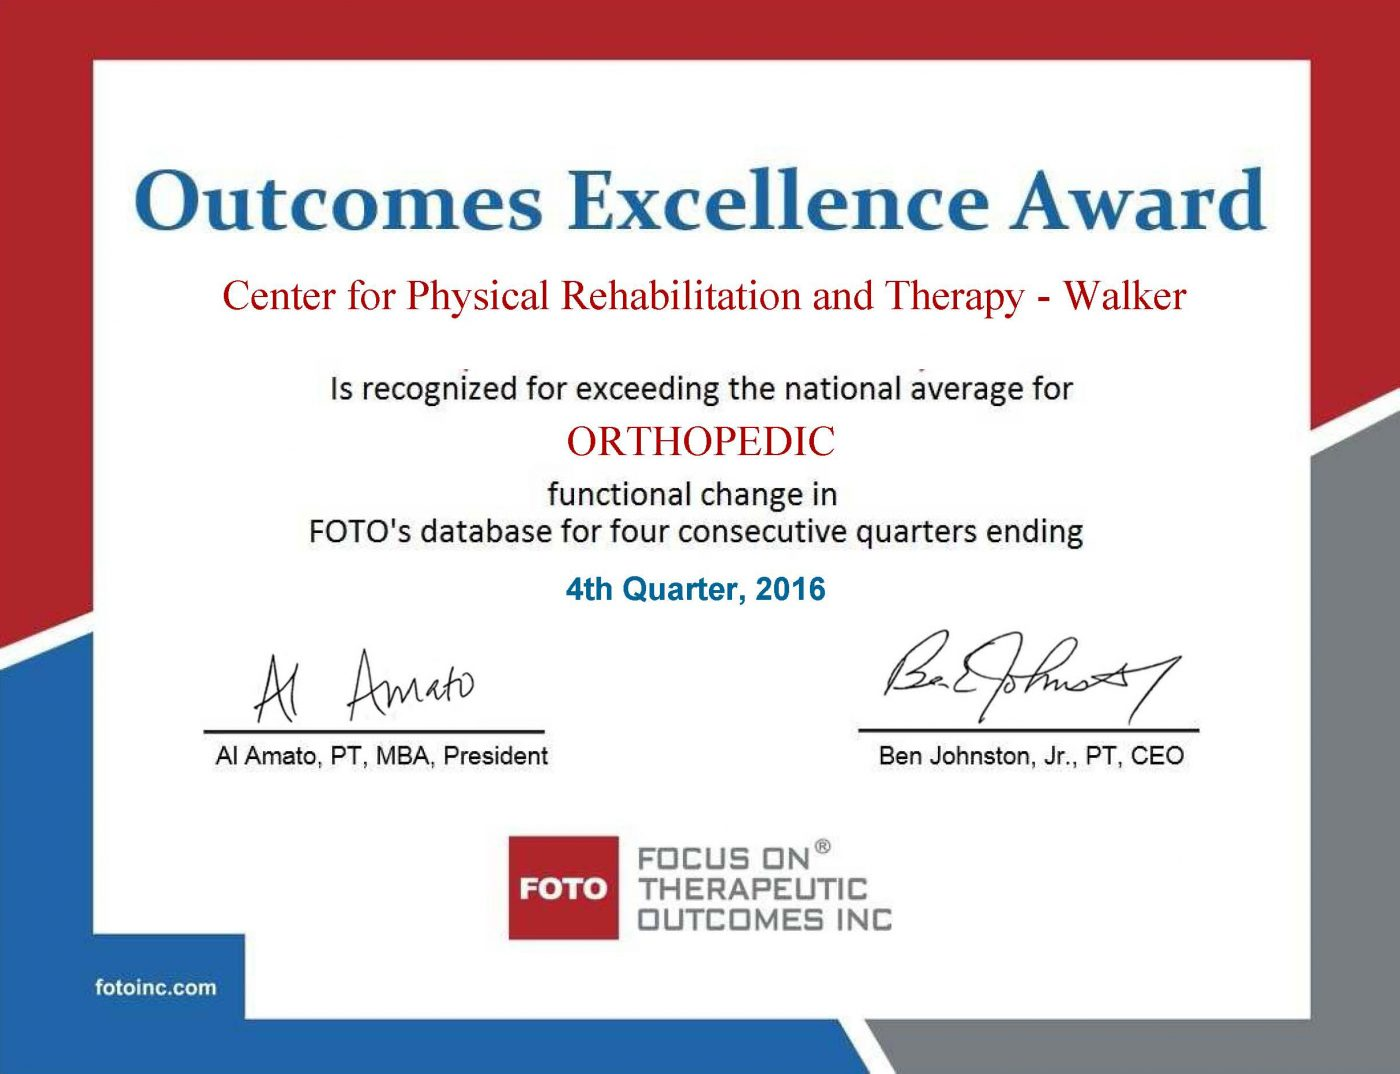 Walker Outcomes Excellence Award Fourth Quarter 2016